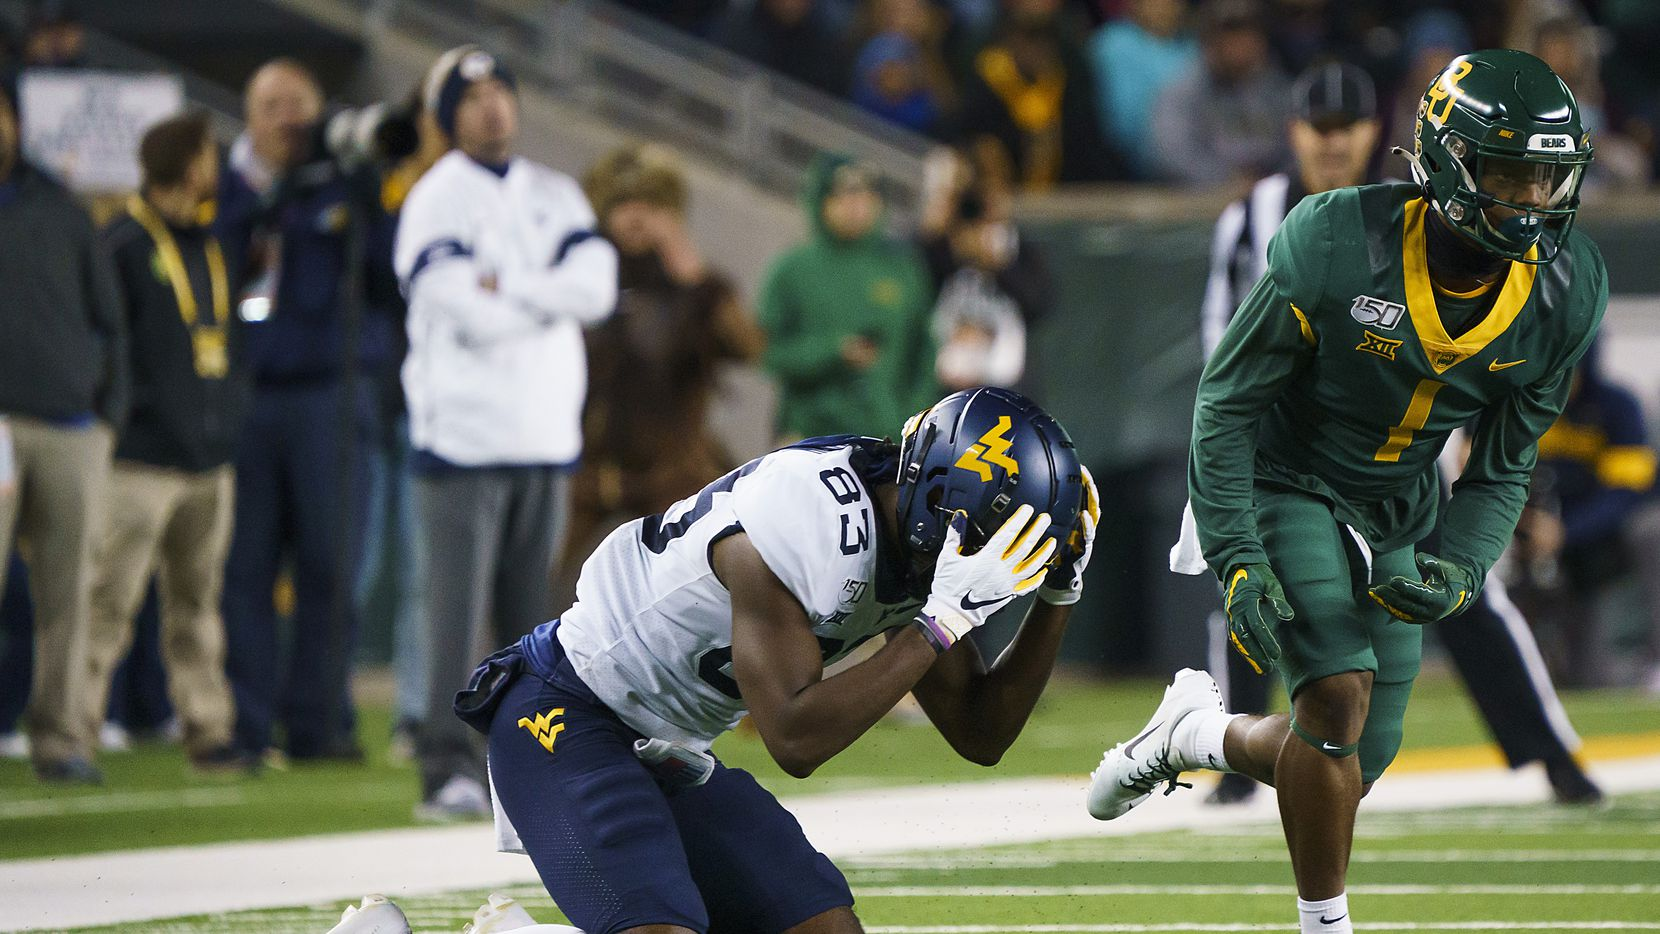 West Virginia wide receiver Bryce Wheaton (83) reacts after missing a pass with Baylor cornerback Grayland Arnold (1) defending during the second half of an NCAA football game at McLane Stadium on Thursday, Oct. 31, 2019, in Waco, Texas.